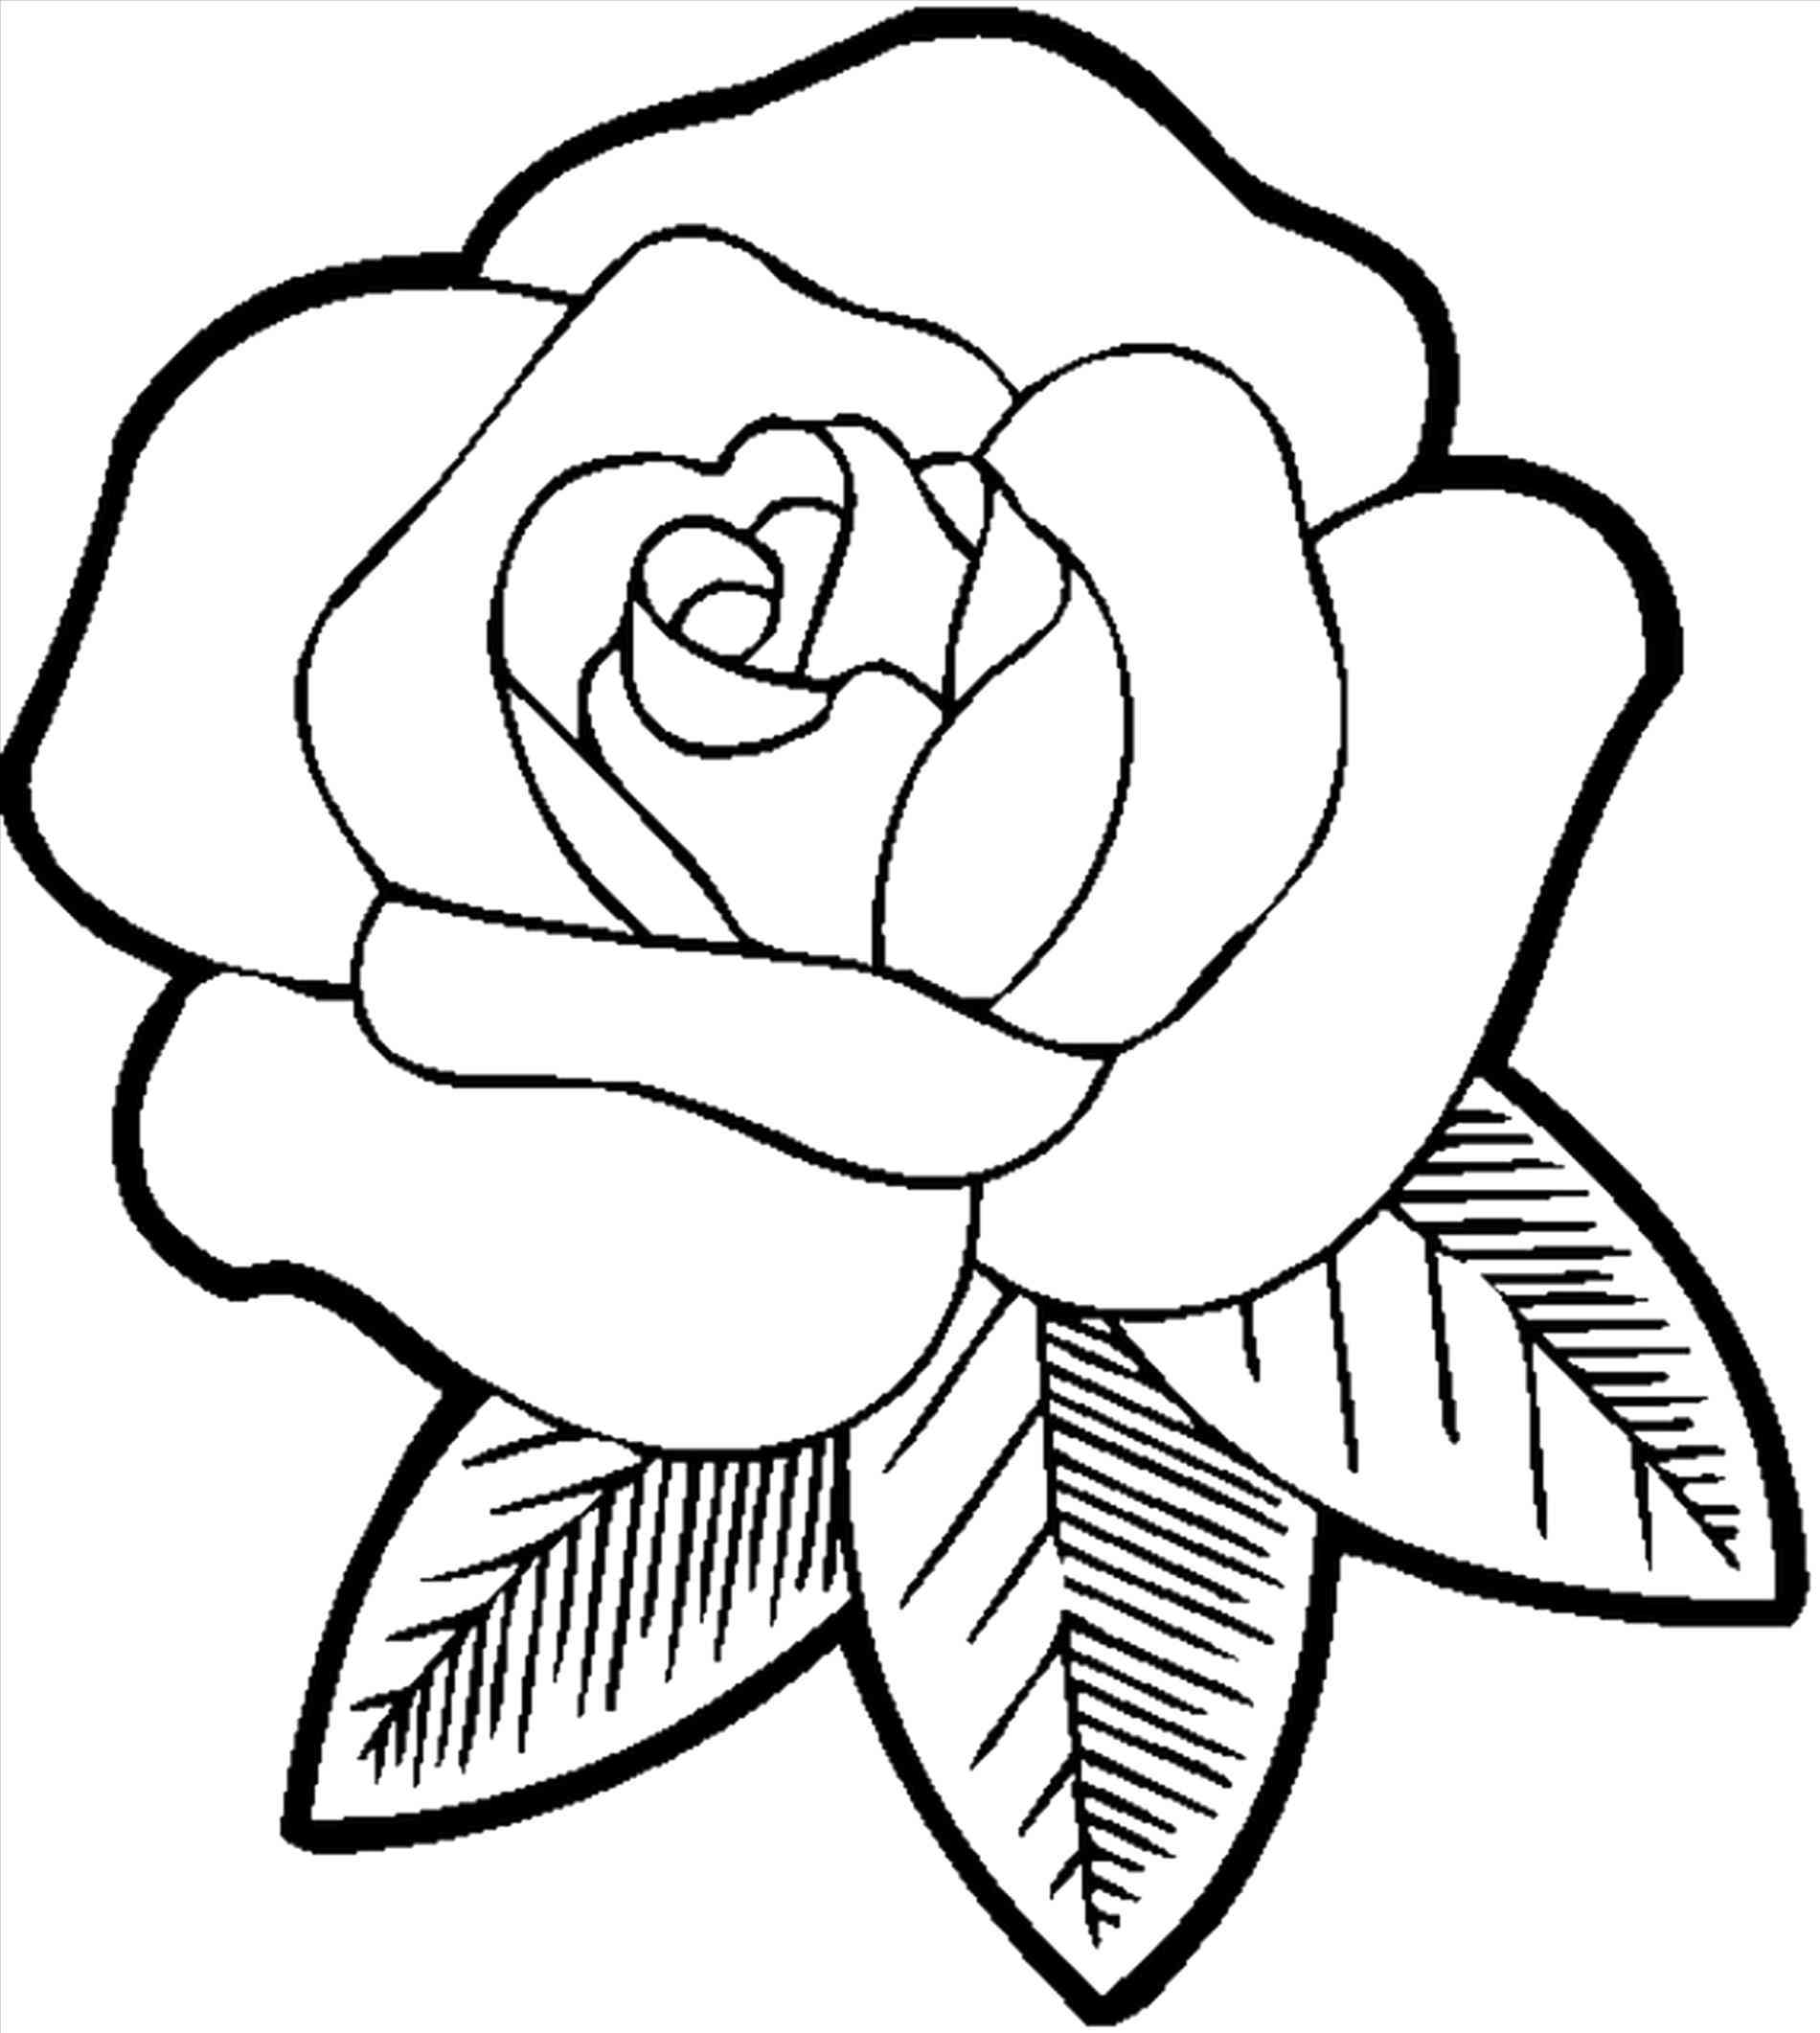 Rose Drawing Stencil at GetDrawings com | Free for personal